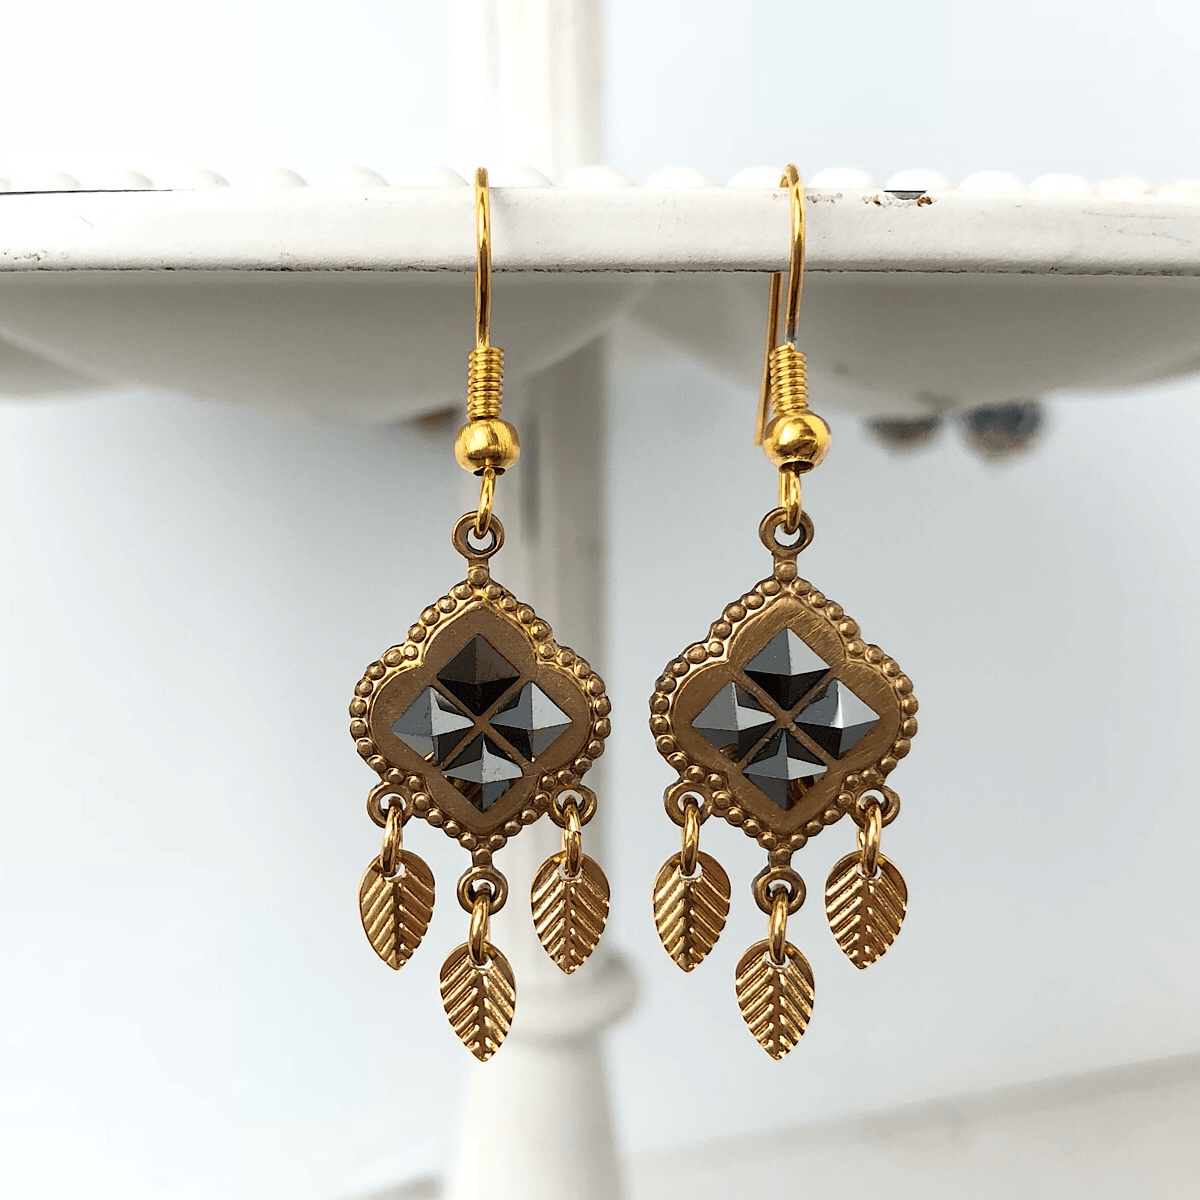 Drina Earrings - IsabelleGraceJewelry